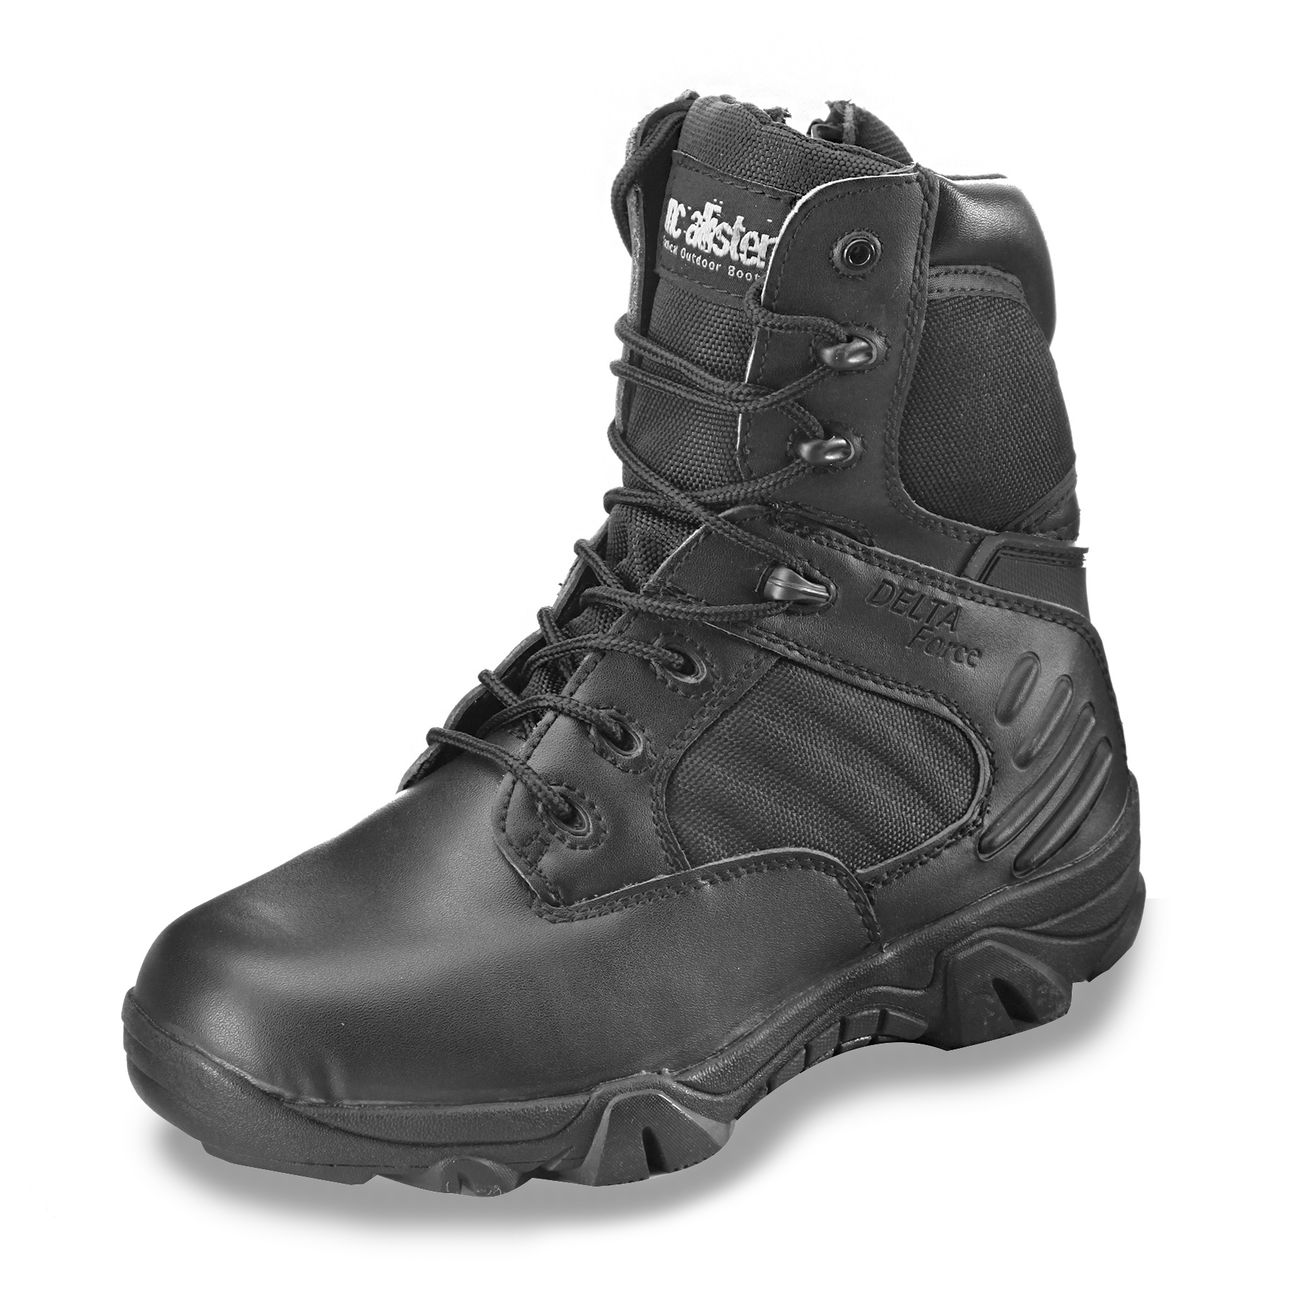 McAllister Stiefel Delta Force Tactical Outdoor Boots schwarz 5